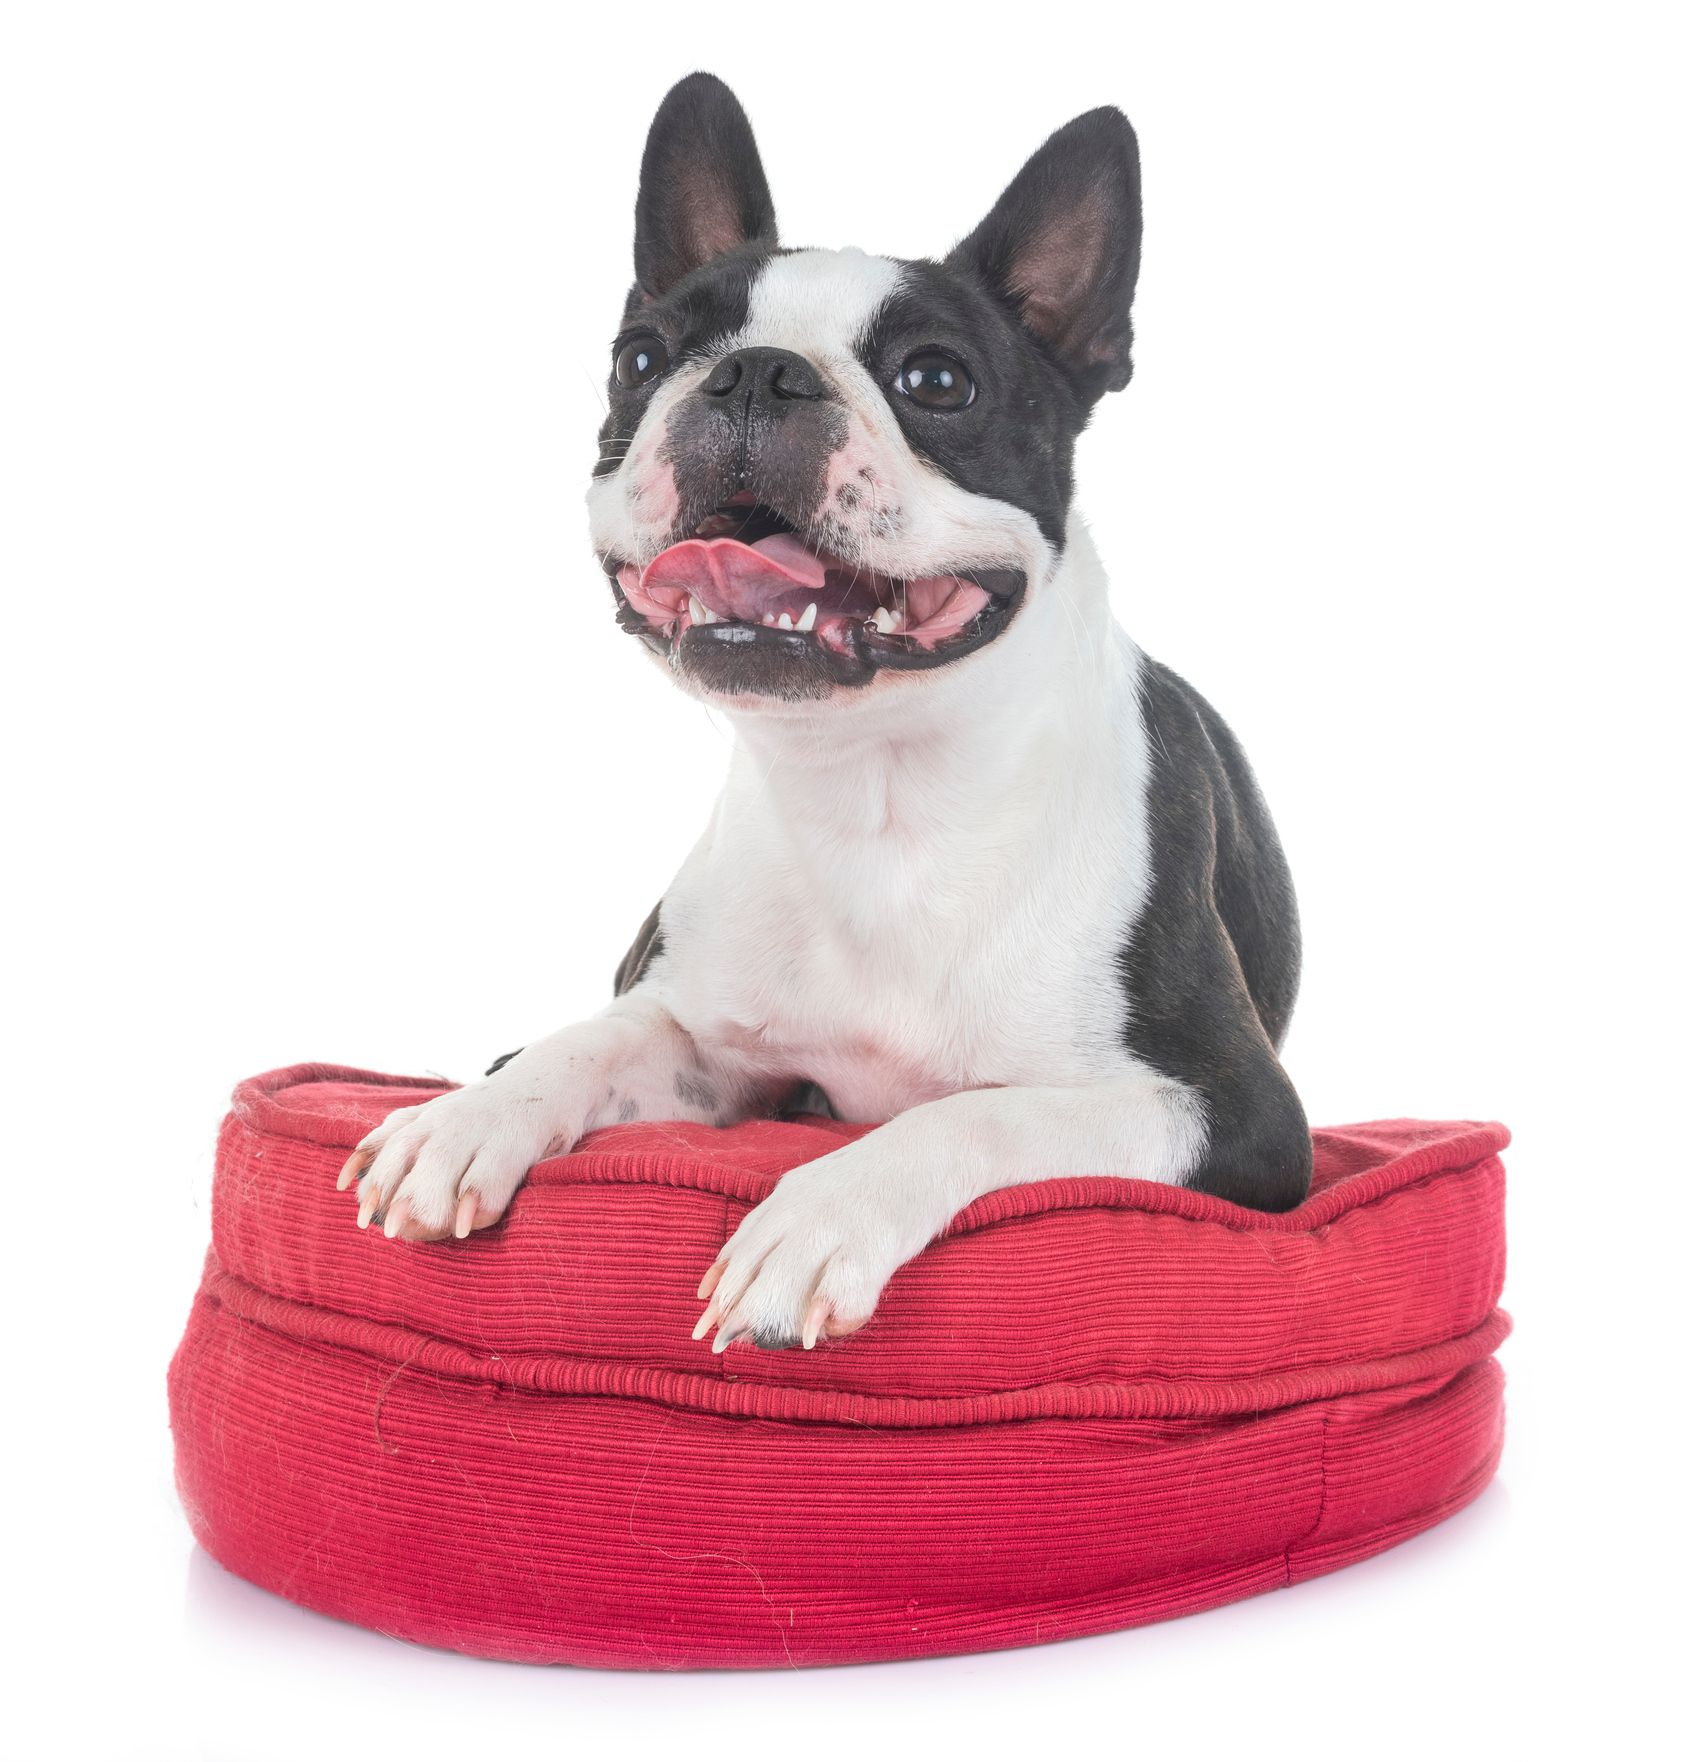 The 9 Best Orthopedic Dog Beds Of 2020